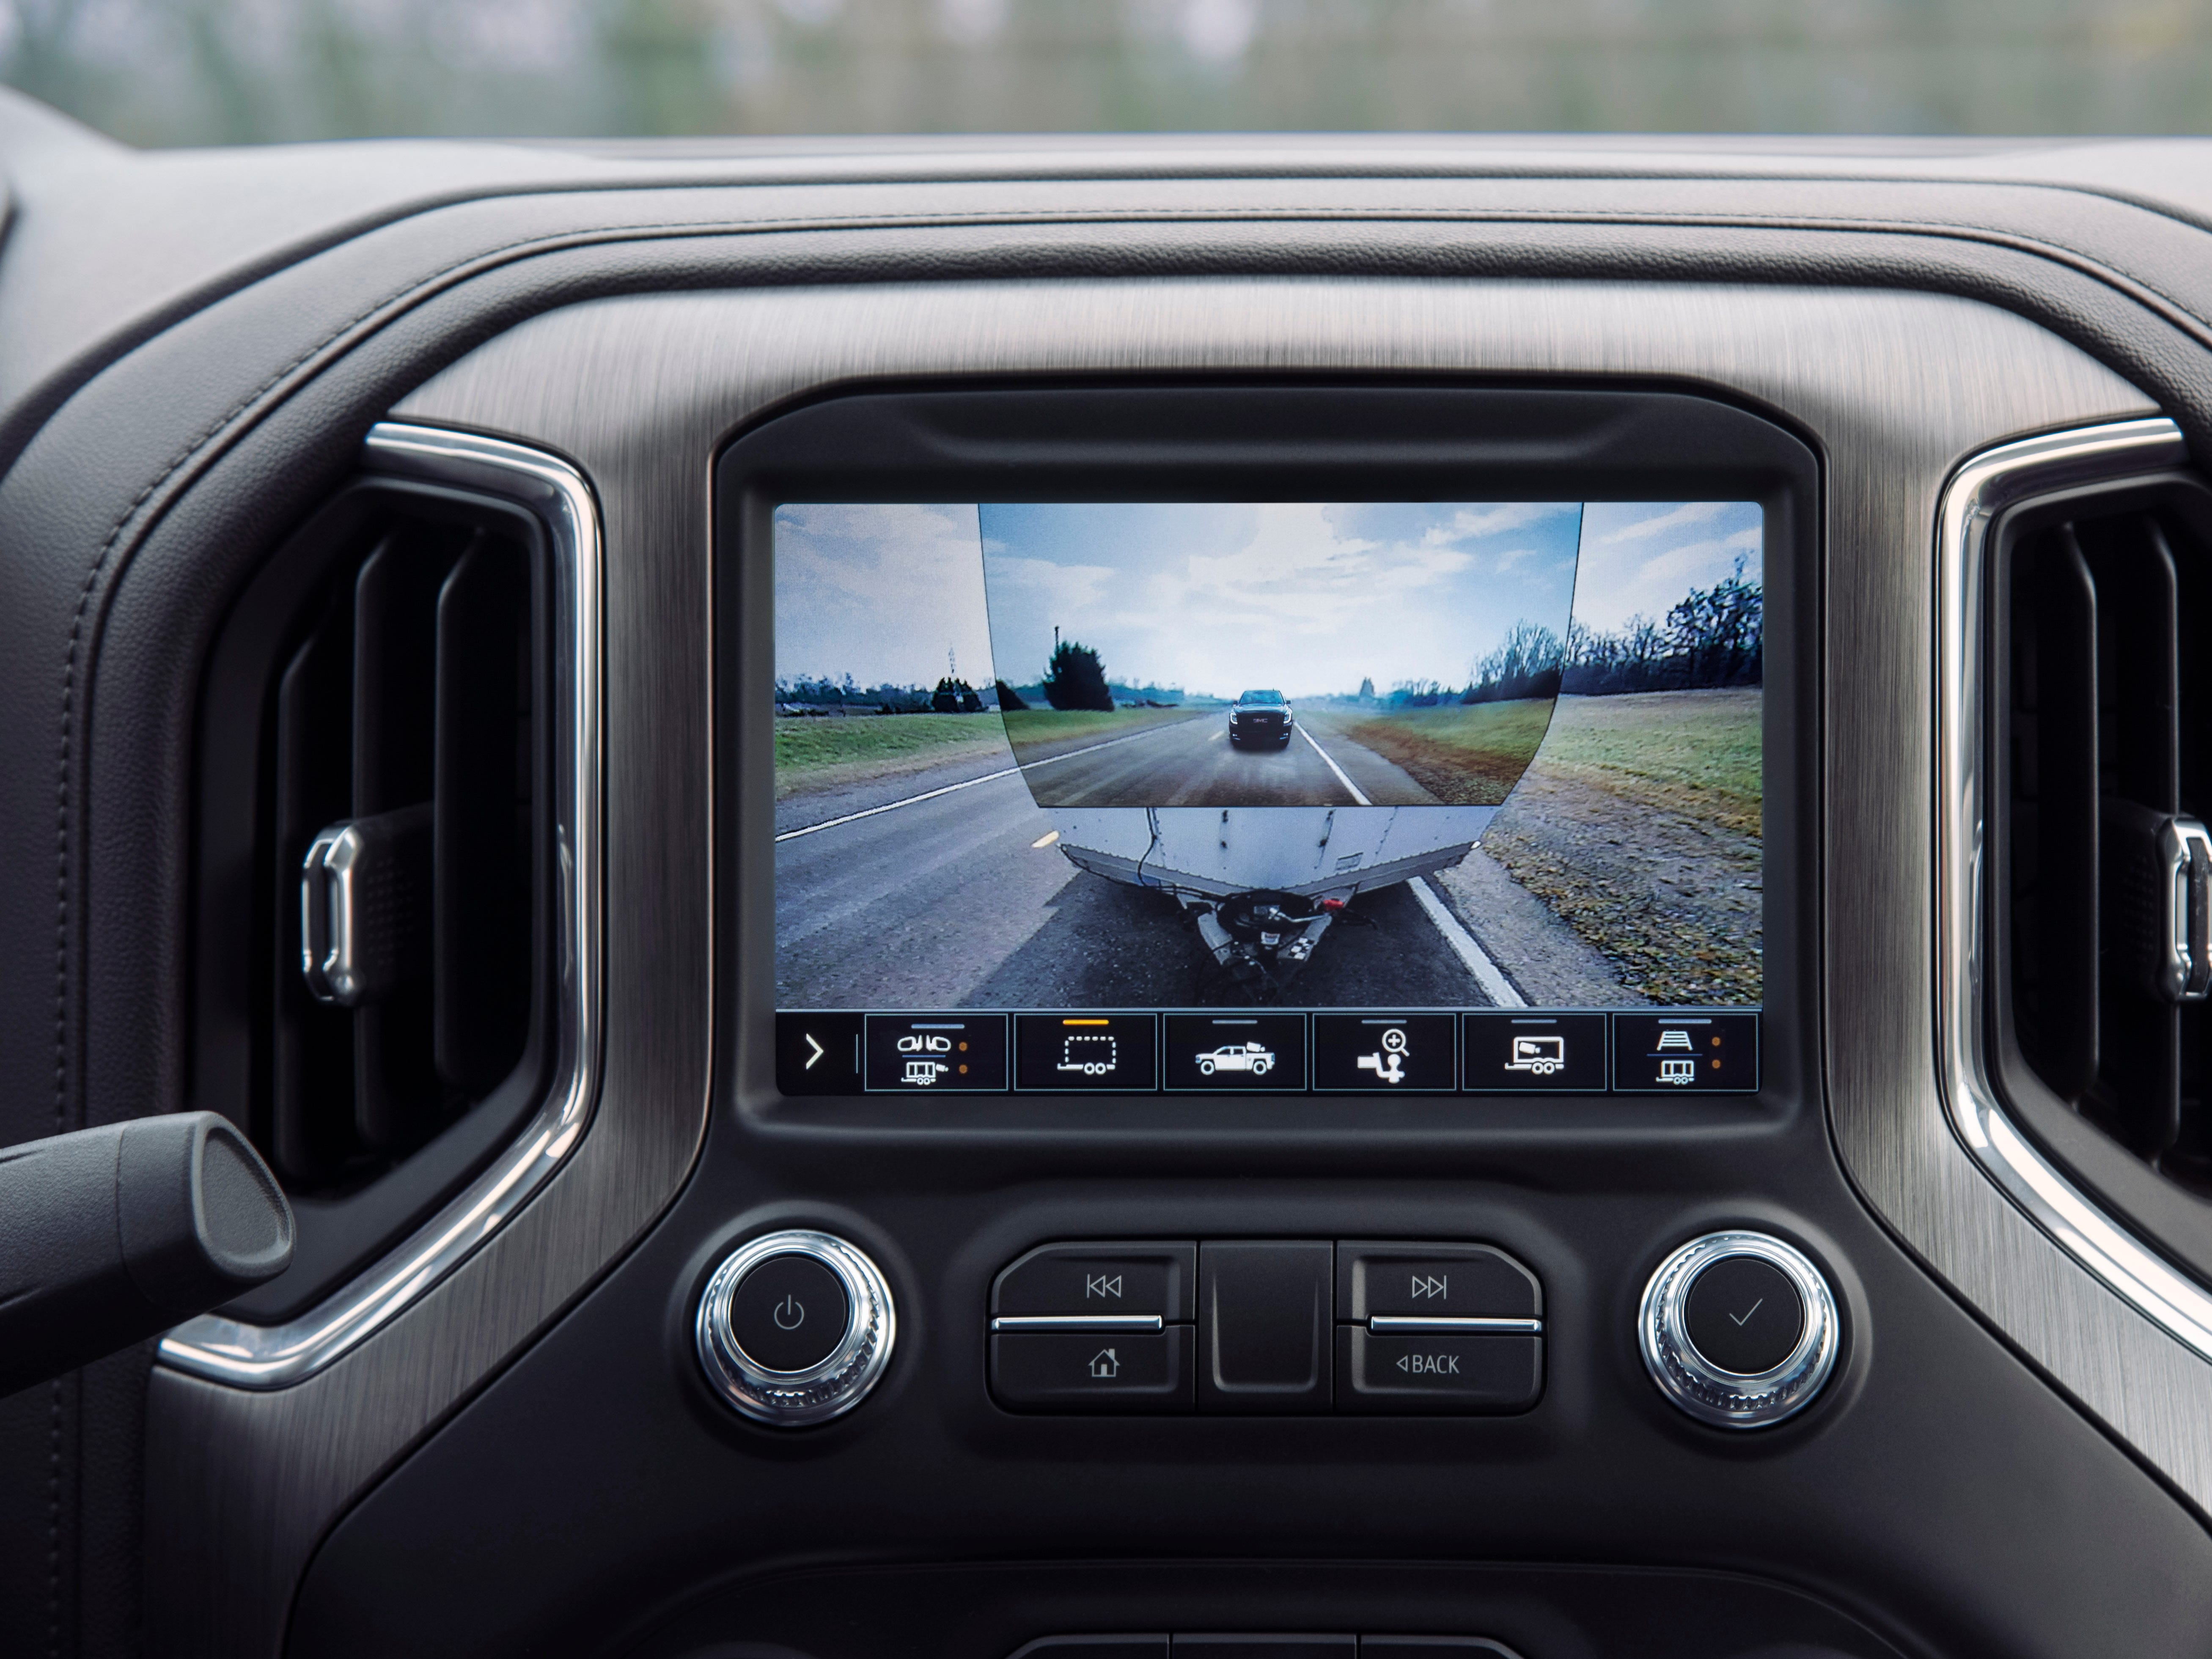 An enhanced ProGrade Trailering system featuring class-leading available 15 camera views, including a segment-first transparent trailer view to virtually see through a trailer in tow.